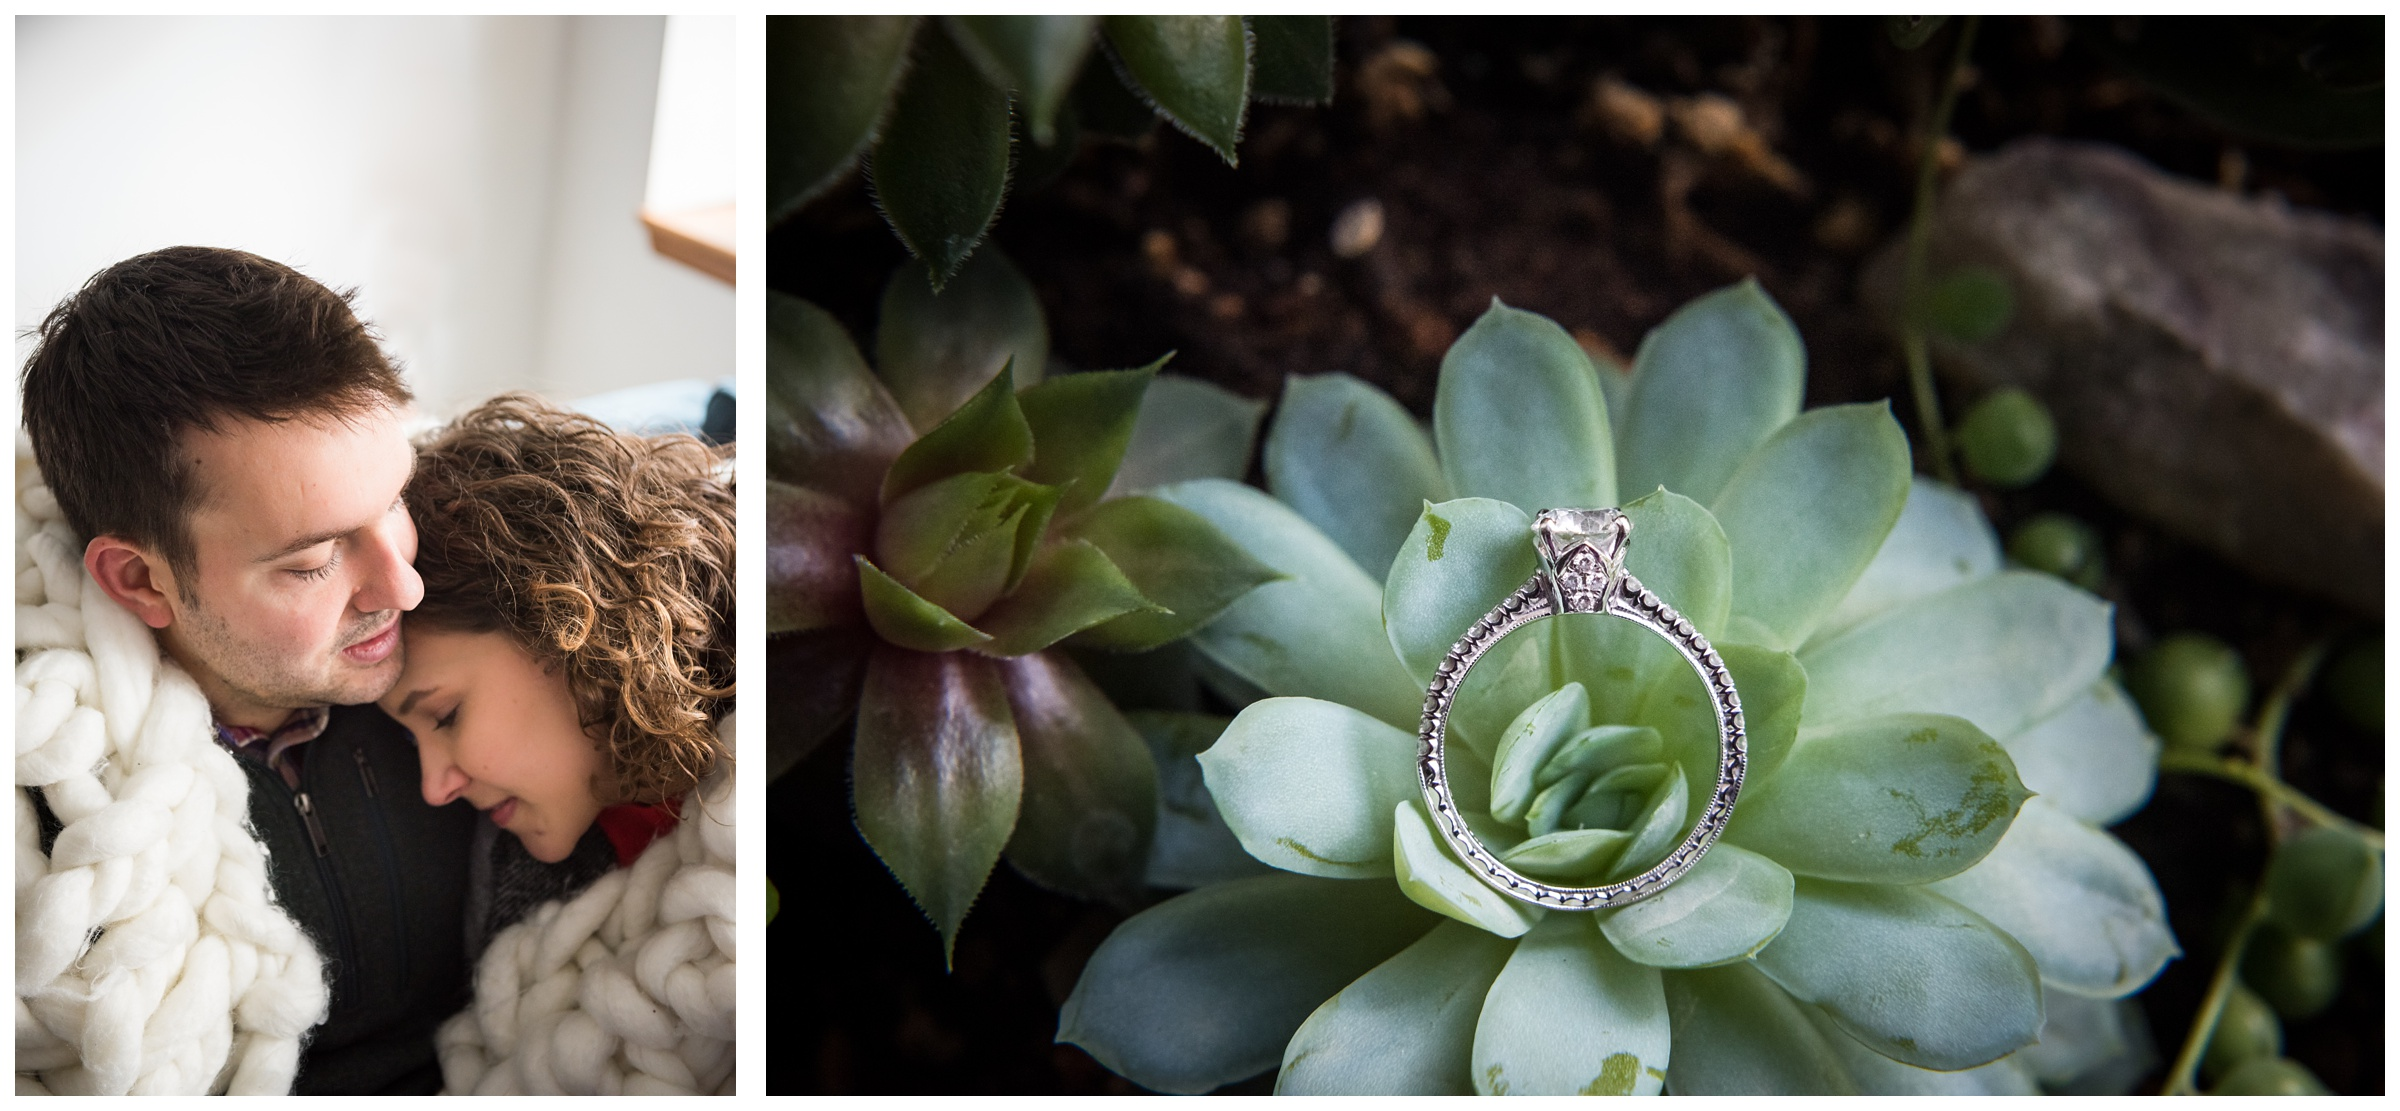 indoor winter engagement photos in the Short North neighborhood of Columbus, Ohio and engagement ring with succulent plant